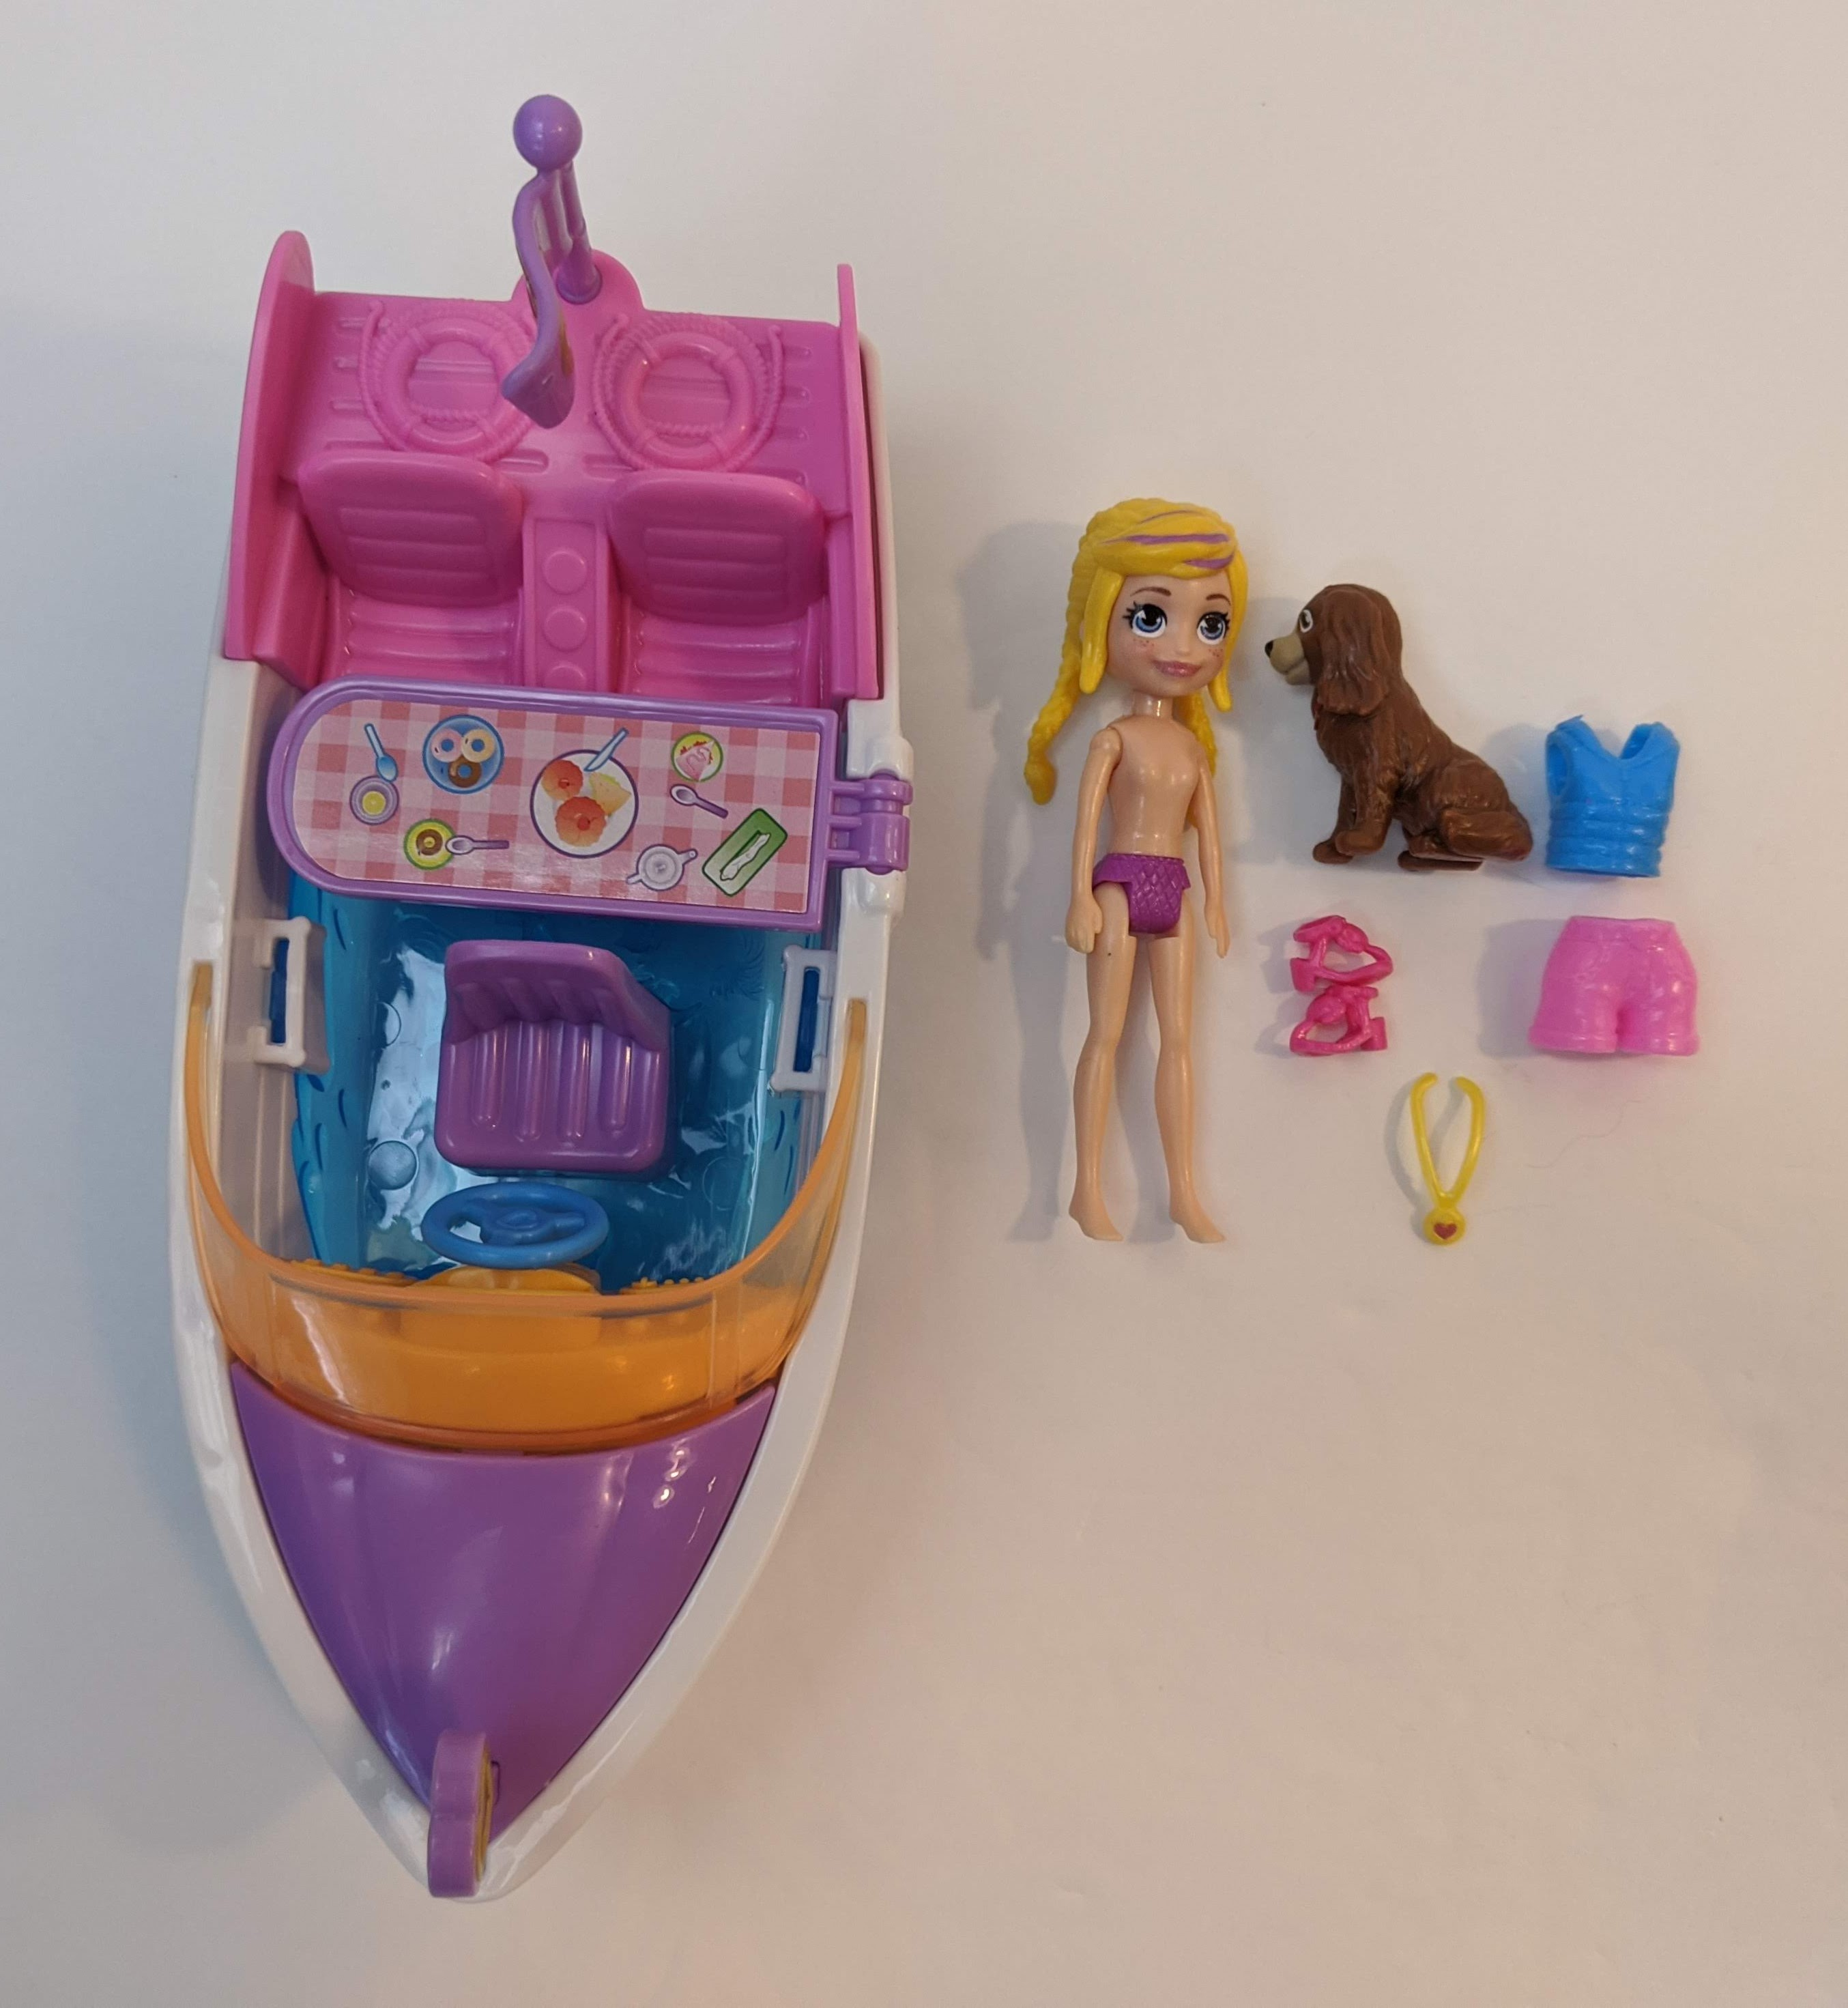 NEW Polly Pocket Ahoy Adventure Speedboat Vehicle /& Figures With Dog